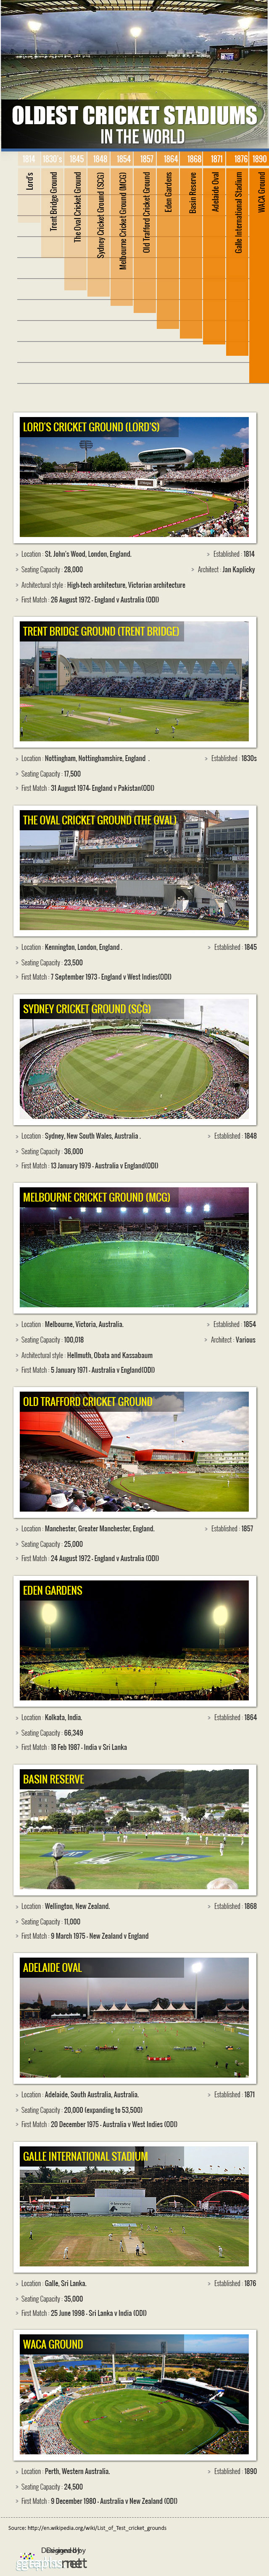 Oldest Cricket Stadiums in the World